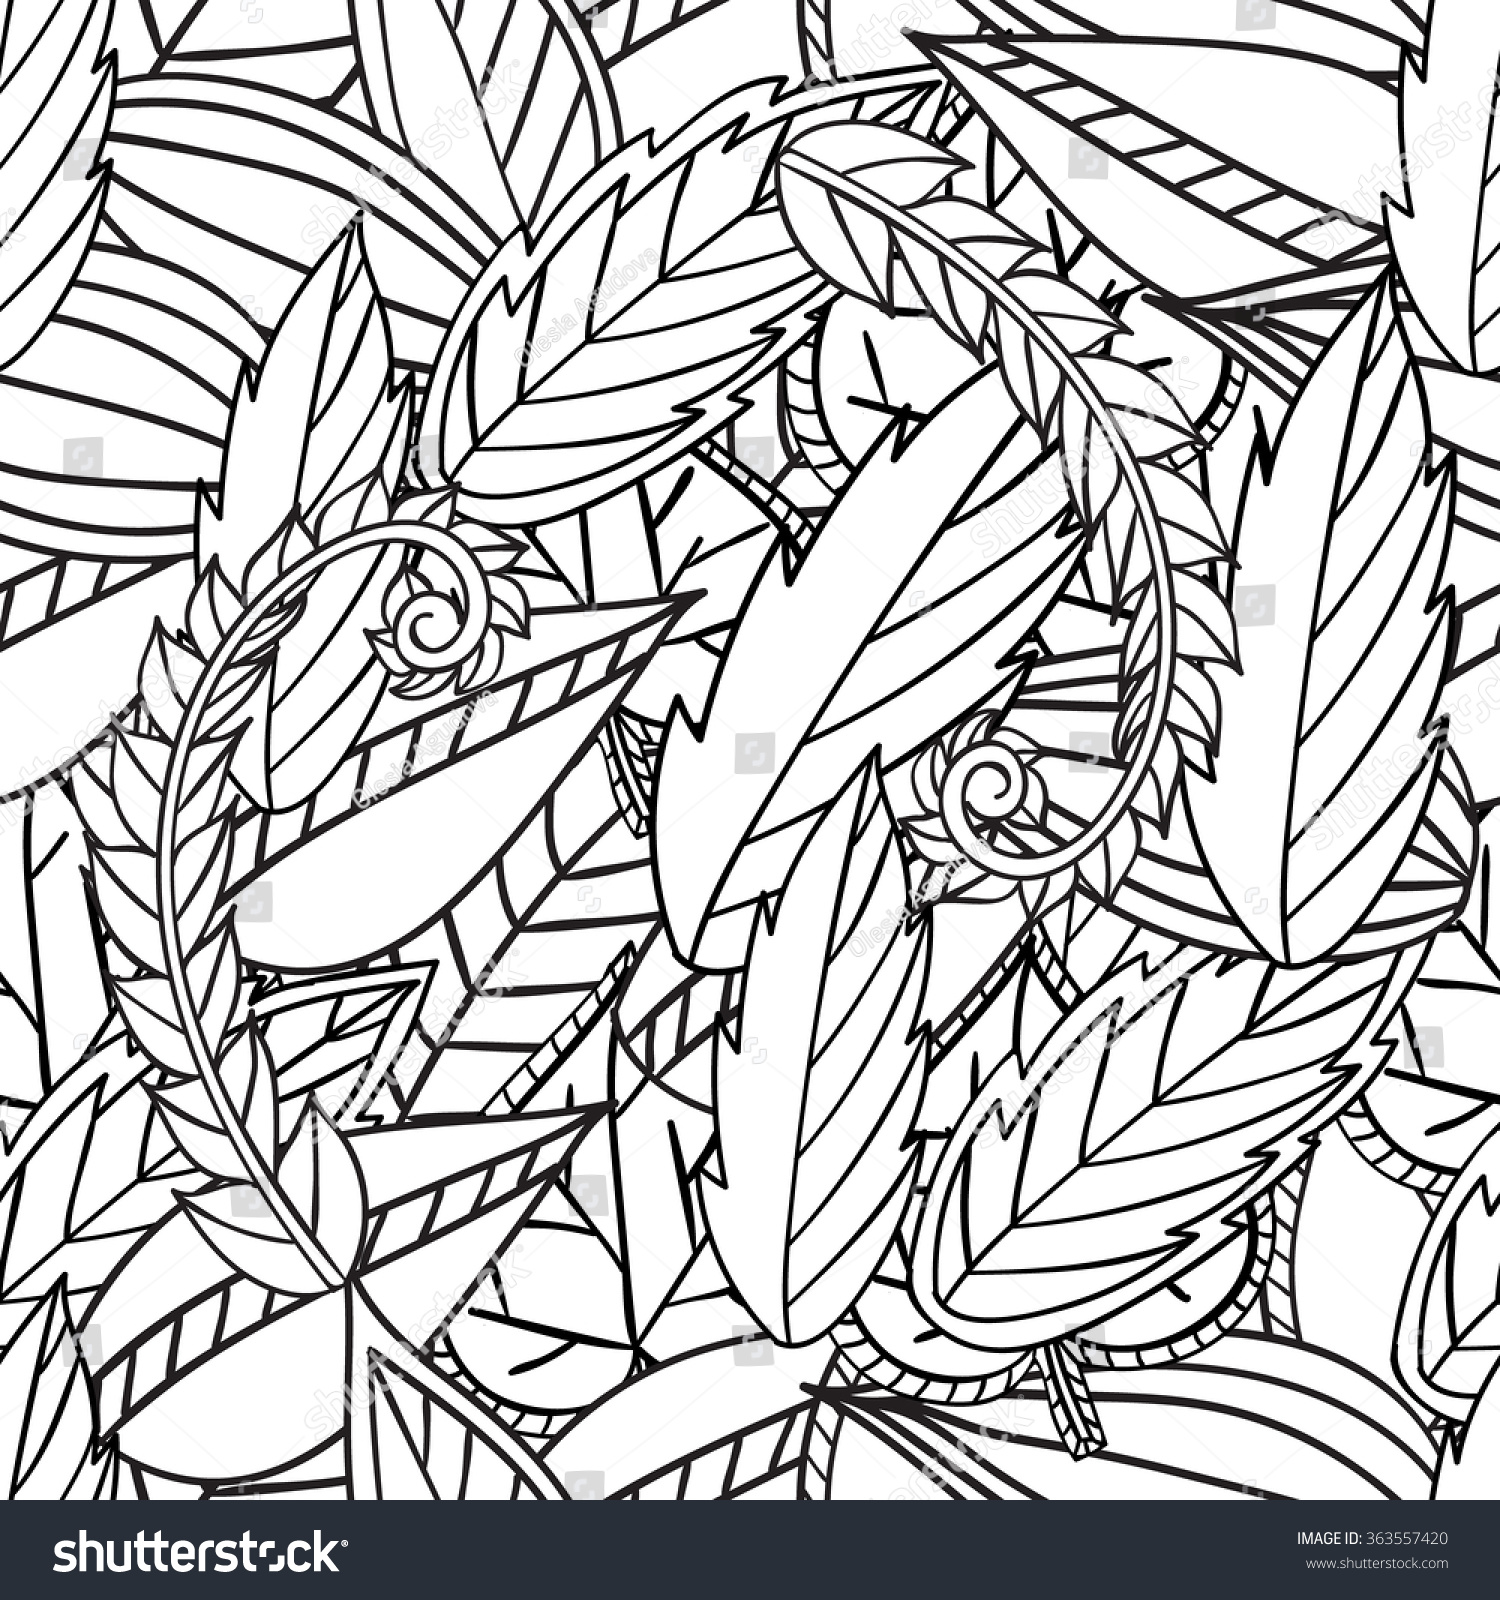 Hand Drawn Artistic Ethnic Ornamental Patterned Stock Vector 363557420